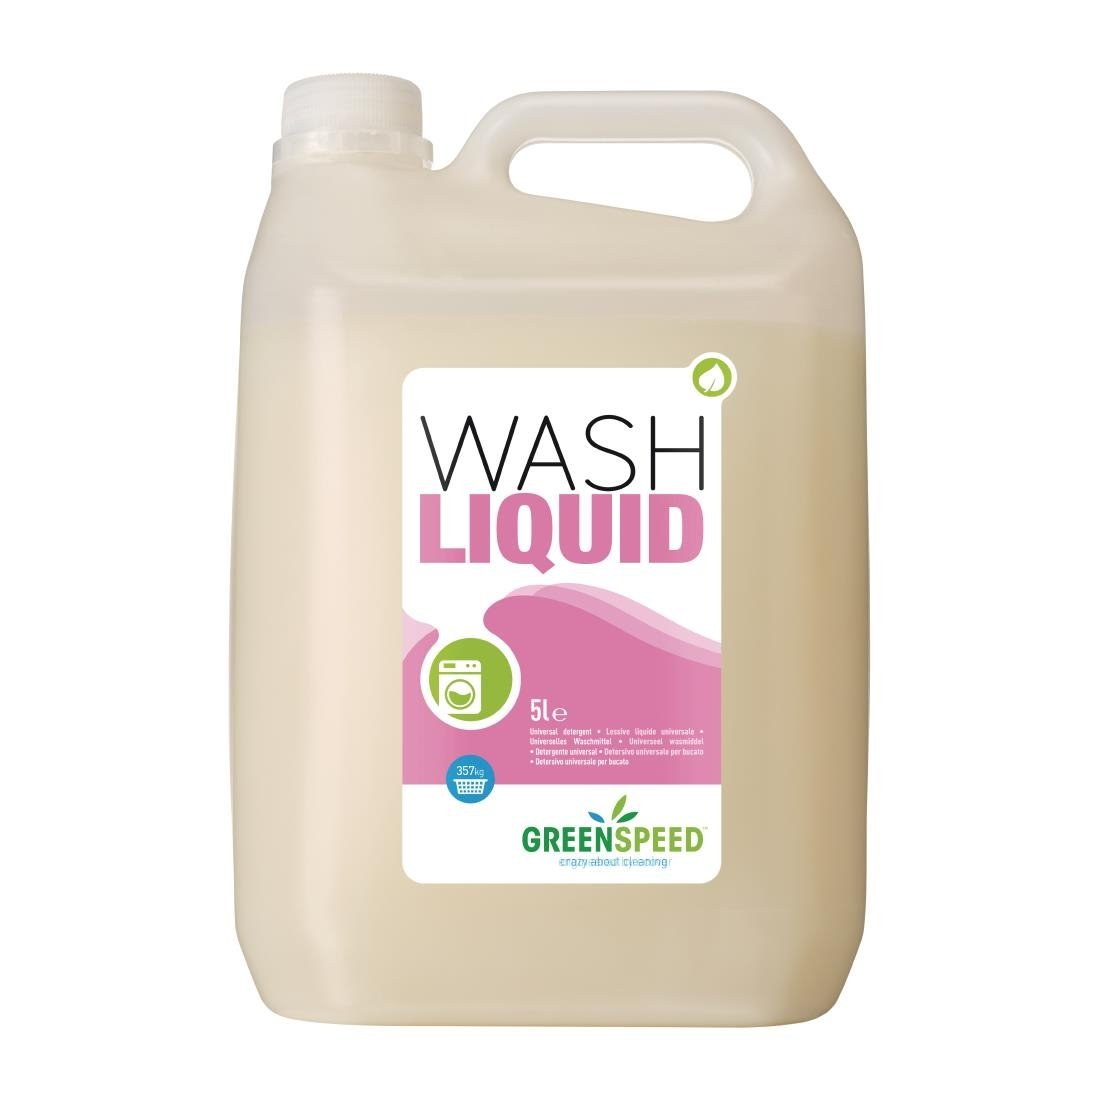 Image of Greenspeed Biological Liquid Laundry Detergent Concentrate 5Ltr (4 Pack) Pack of 4